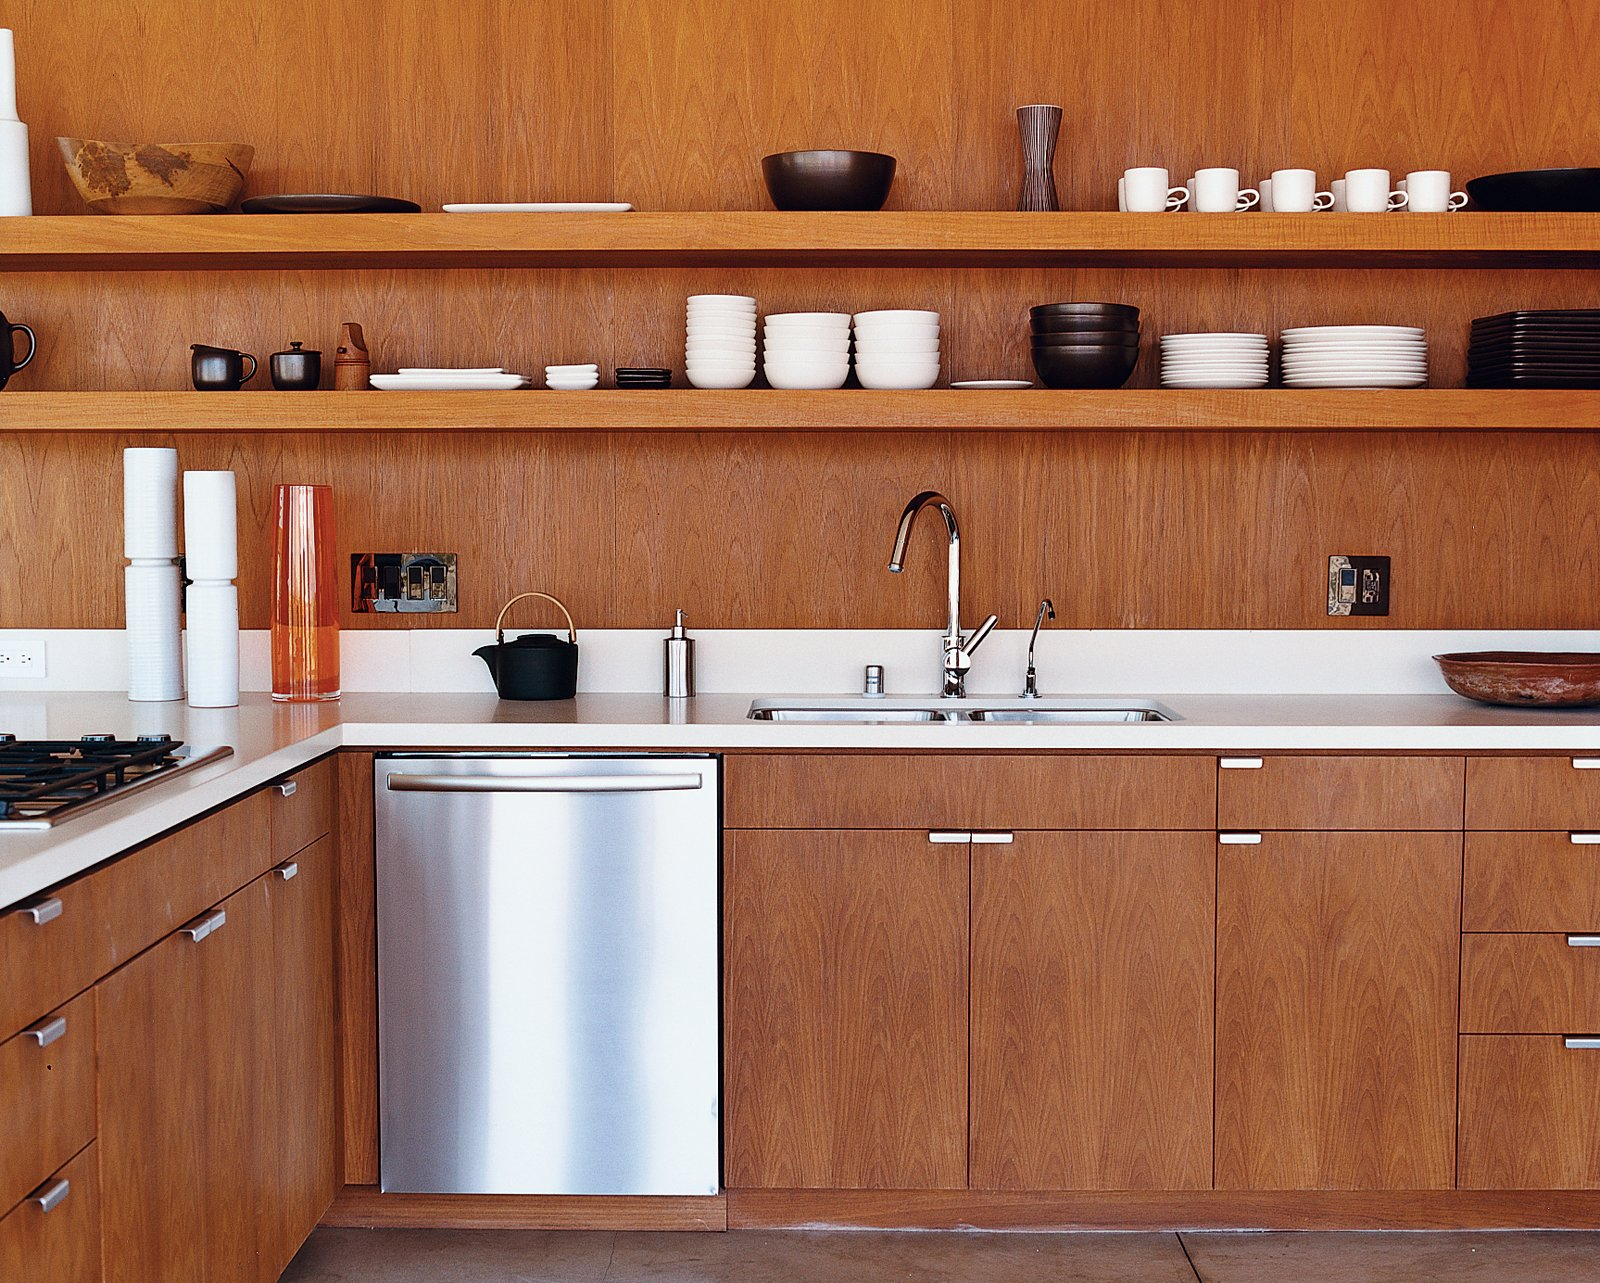 kitchen dishwashers modern sink top 8 for the collection of photos by